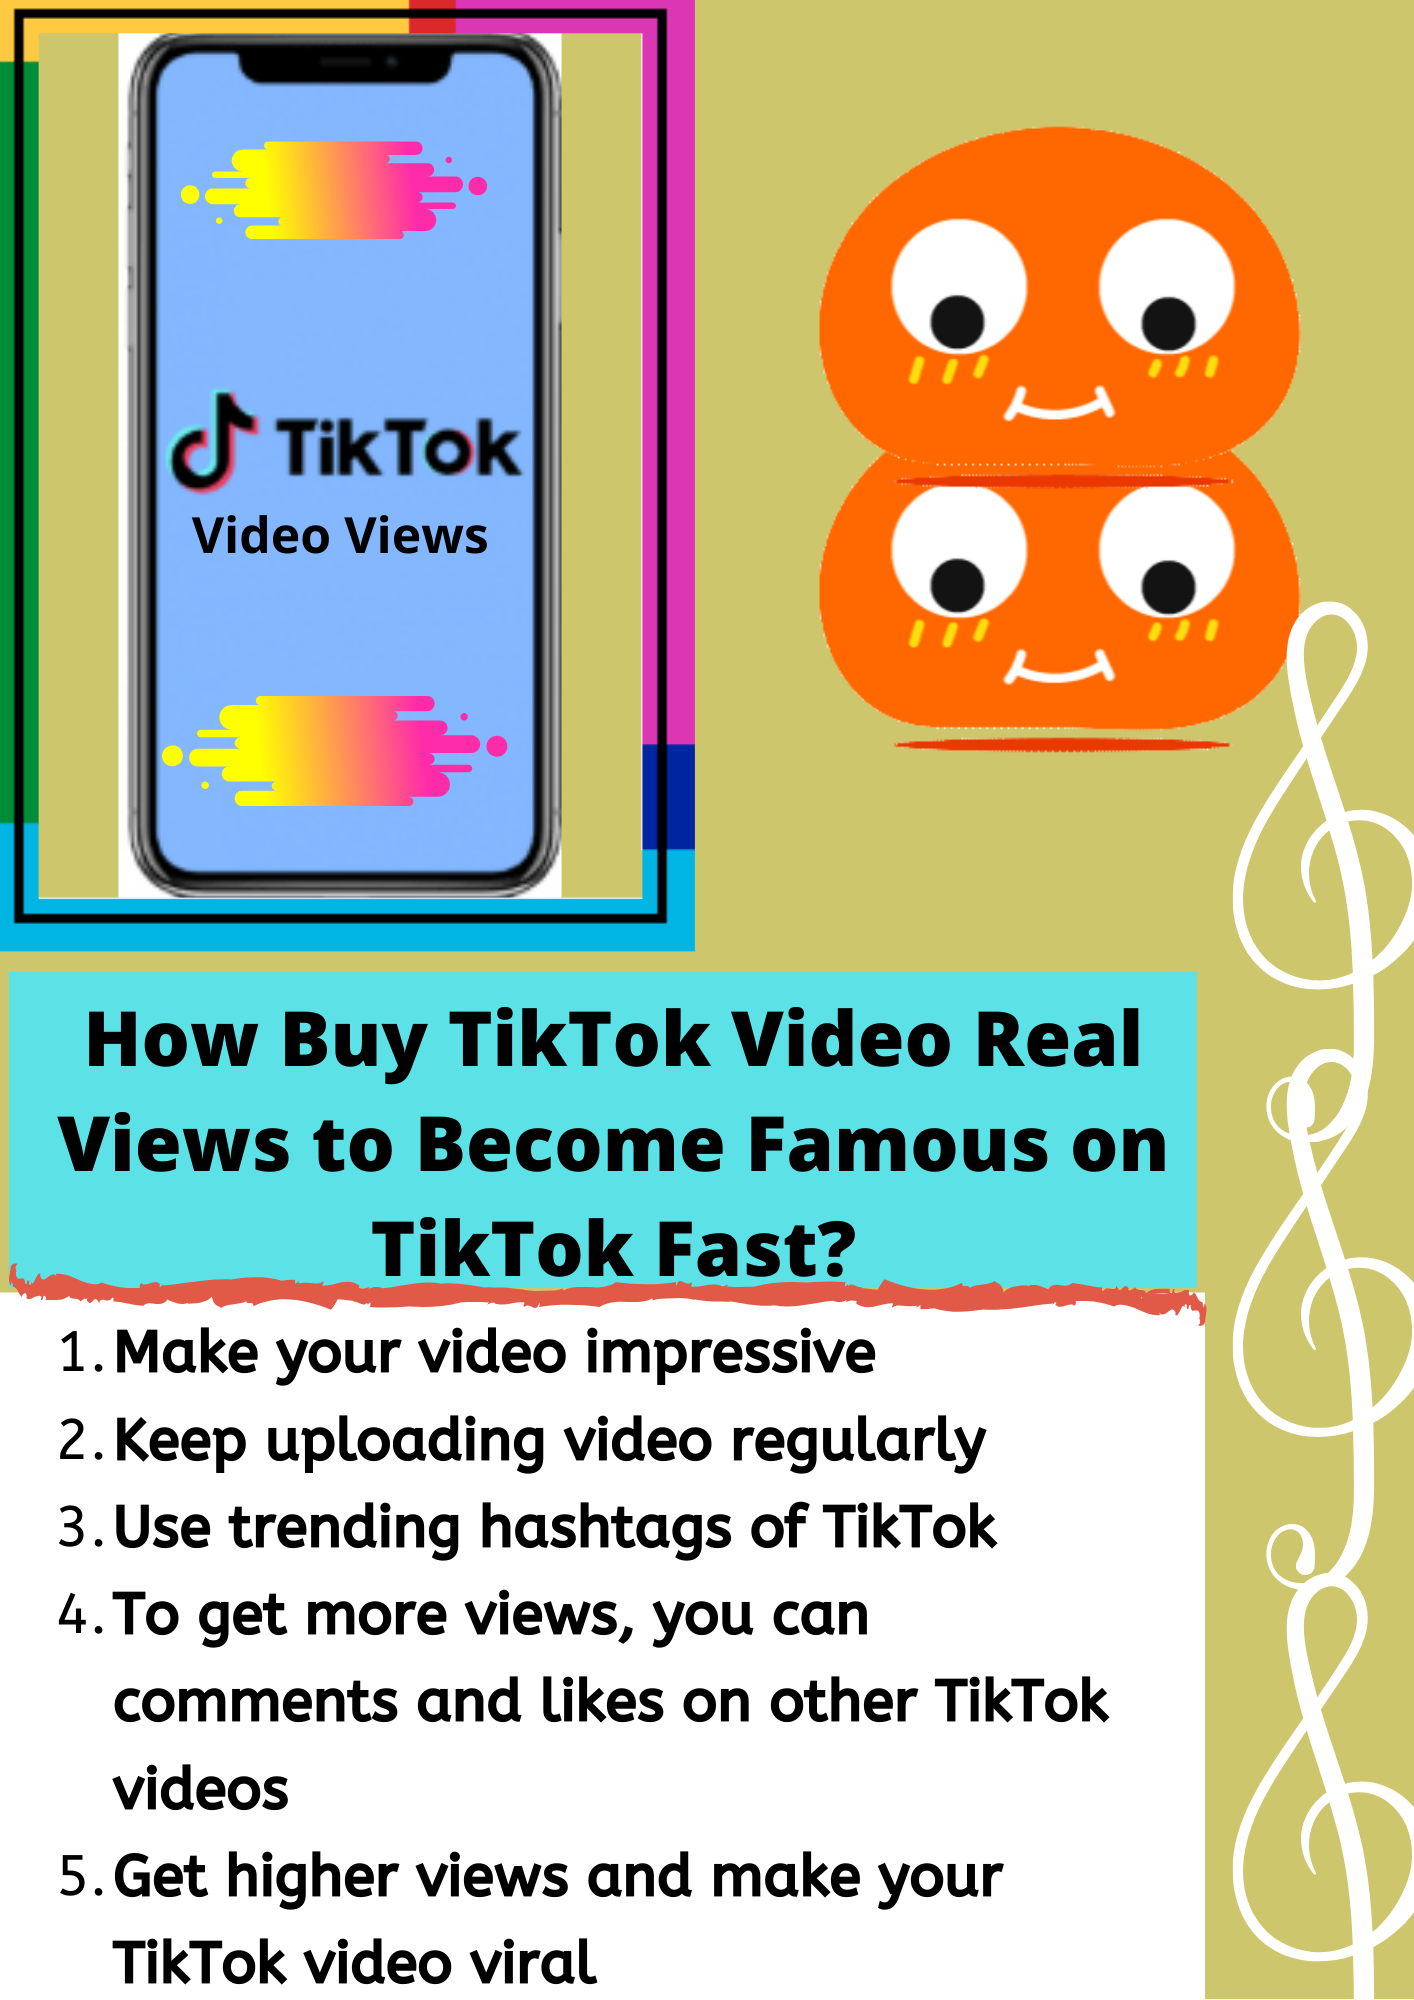 How Buy Tiktok Video Real Views To Become Famous On Tiktok Fast In 2020 Video Trending Hashtags Stuff To Buy